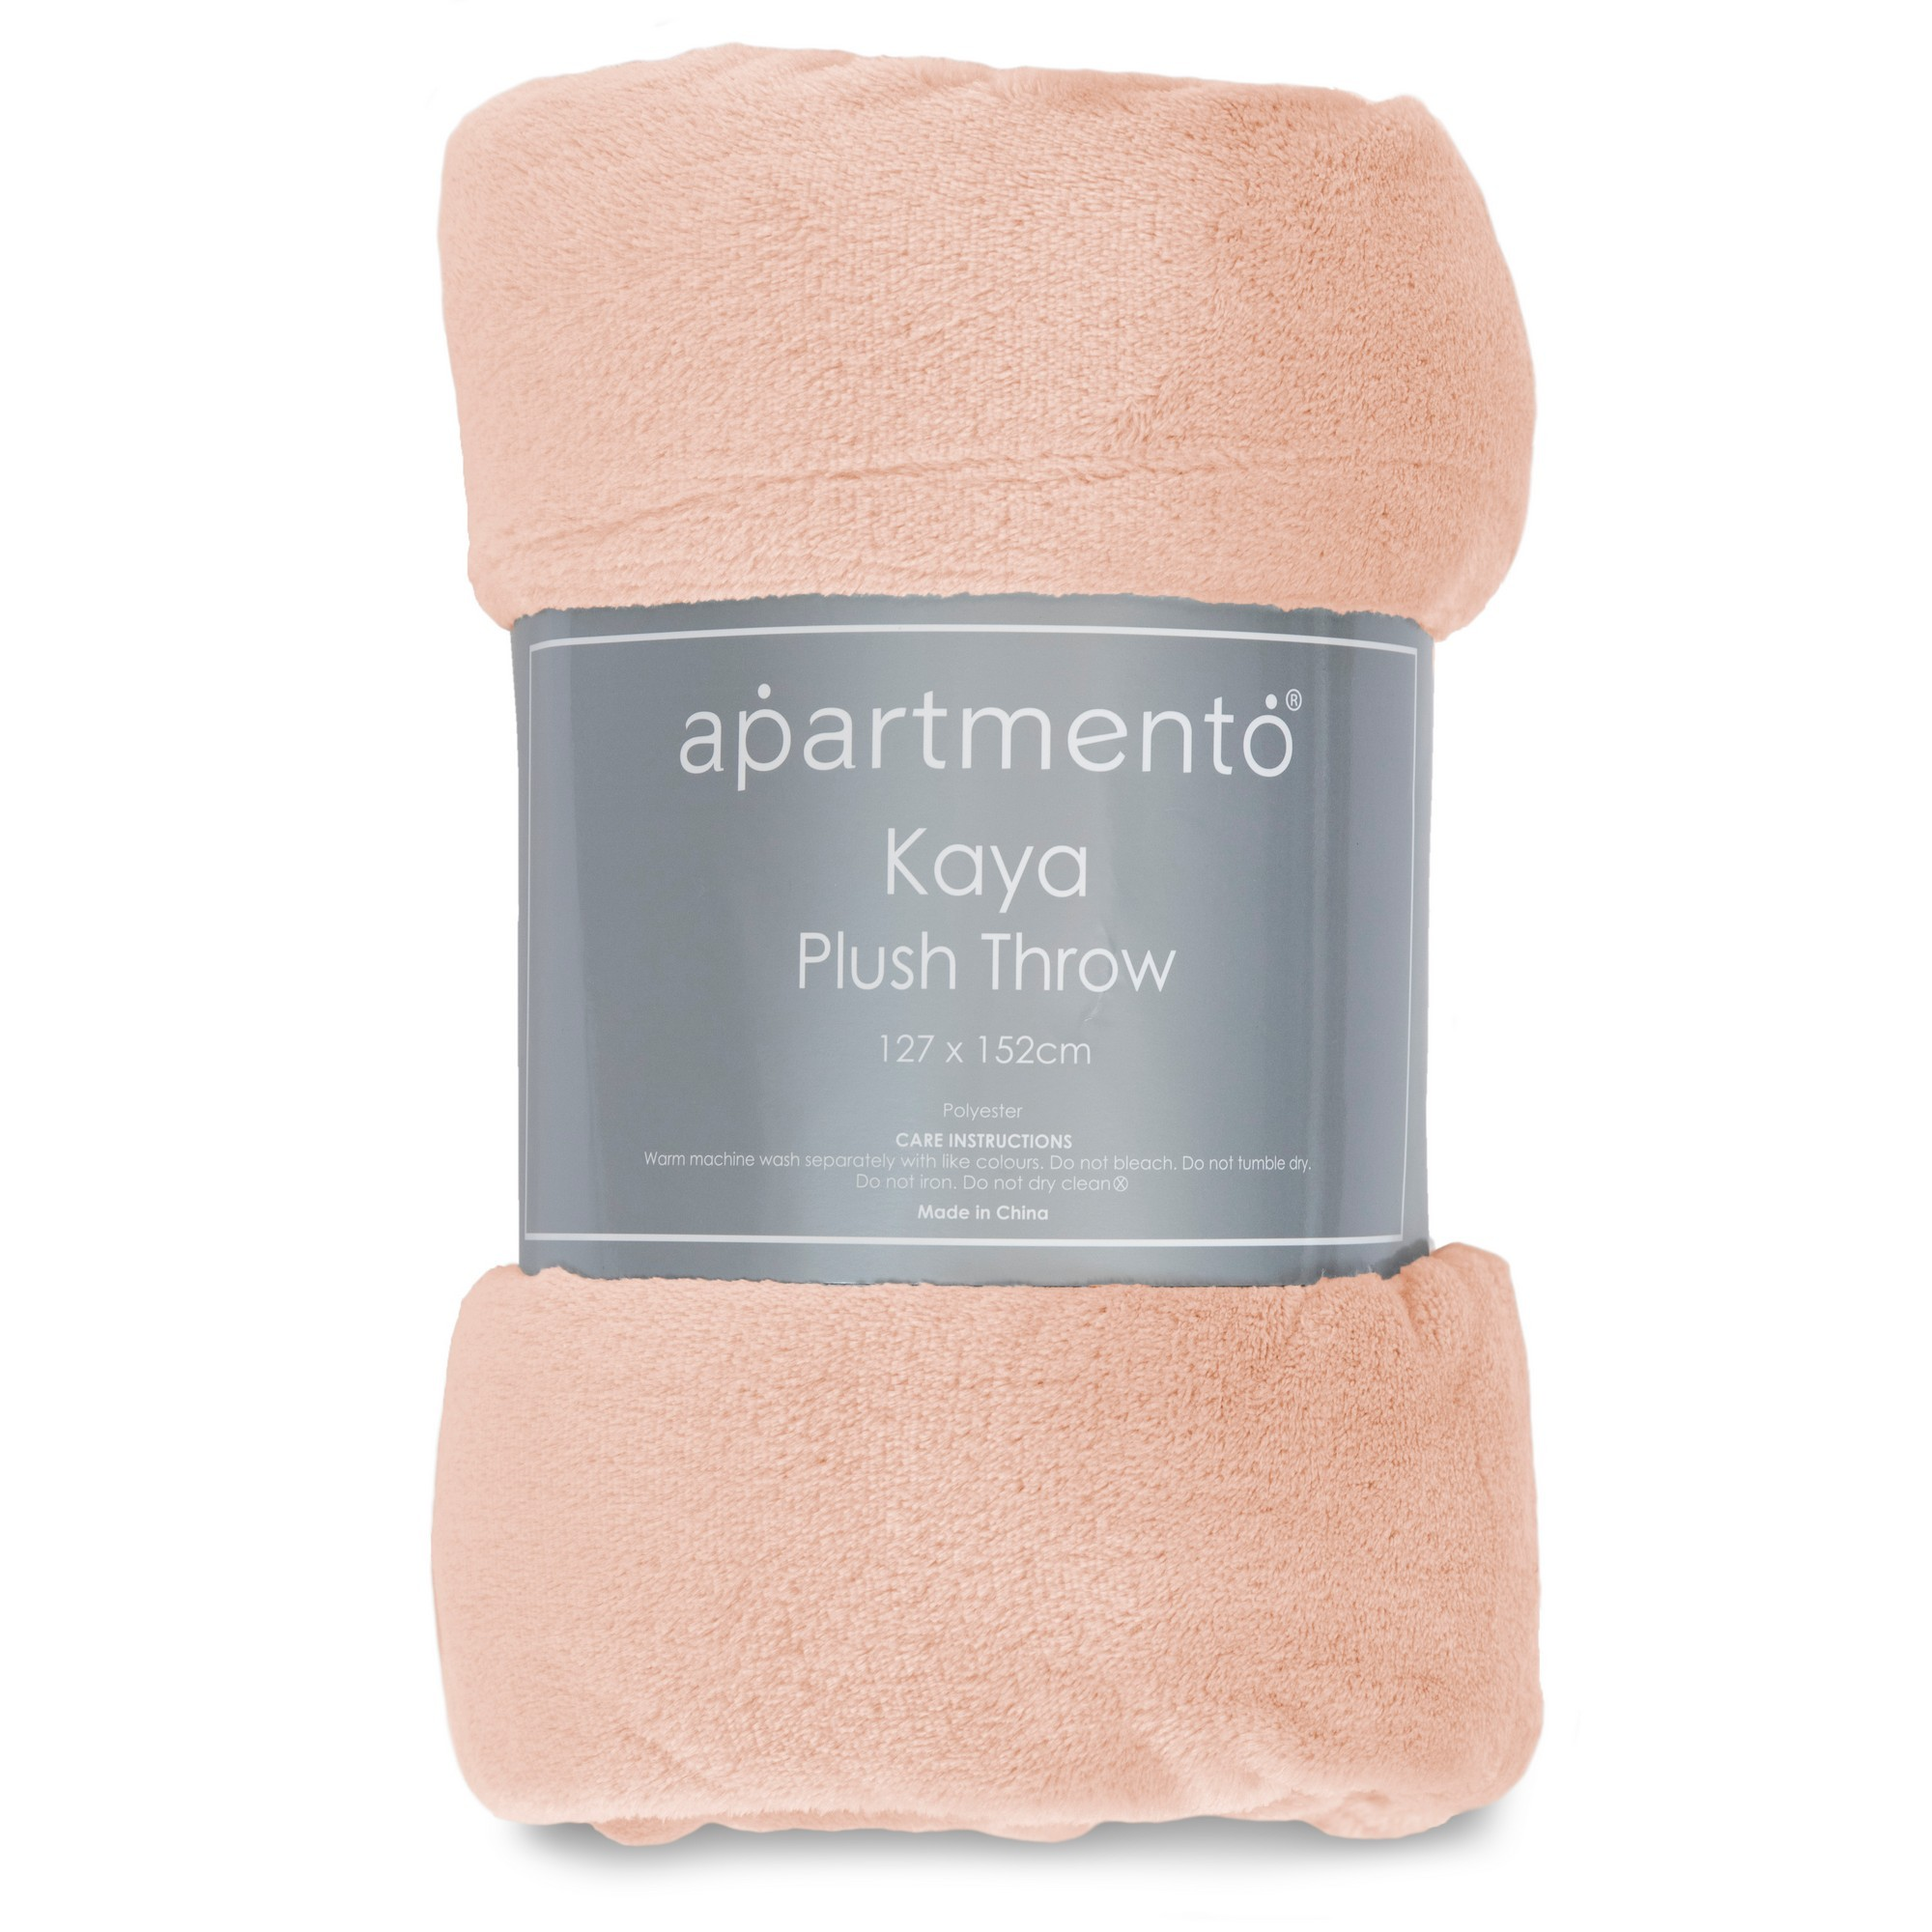 Apartmento Kaya Flannel Plush Throw, 127x152cm, Blush